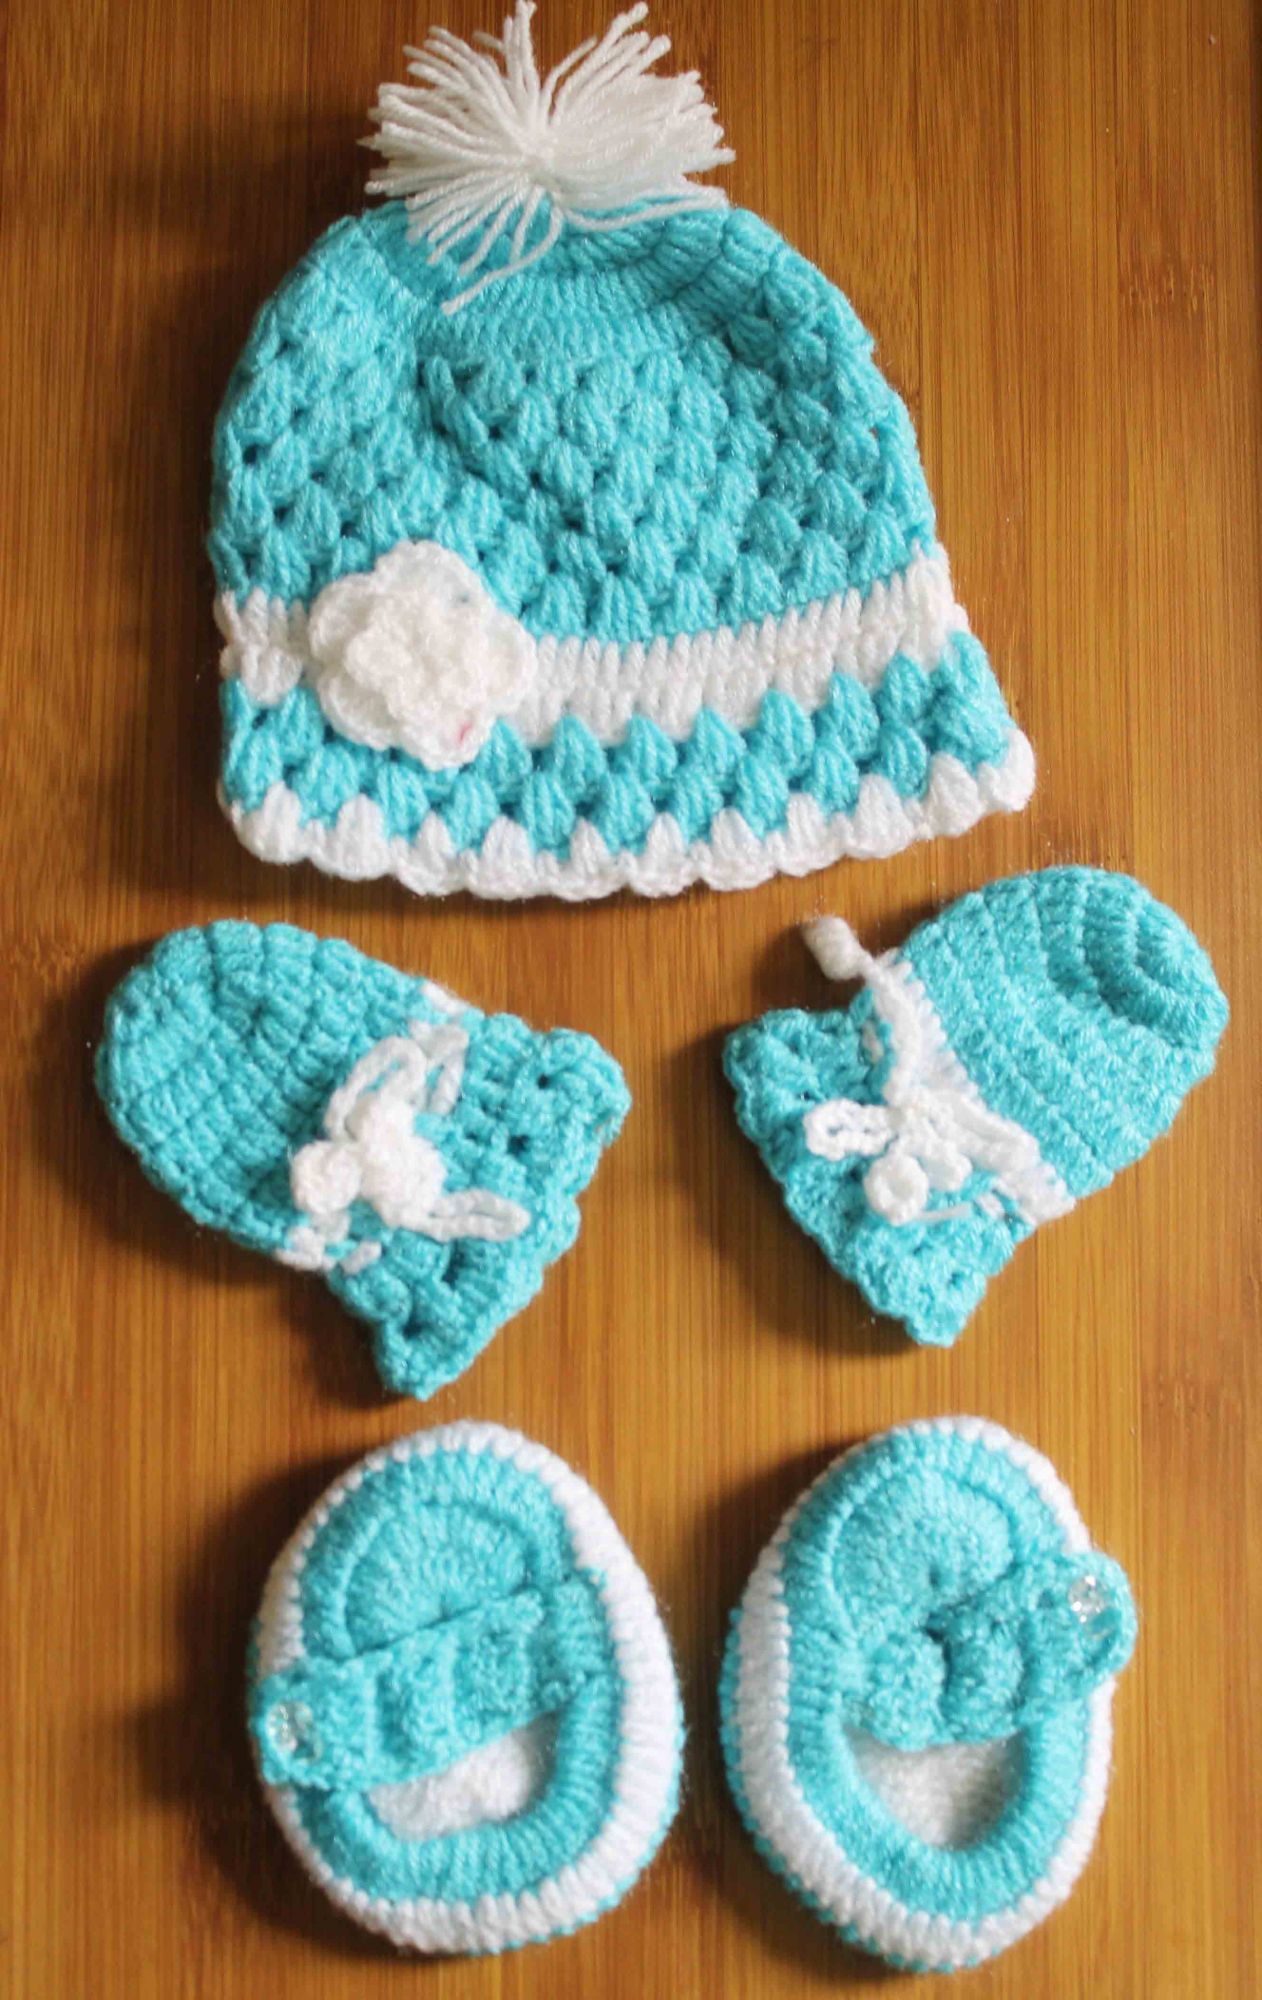 Blue and White Woolen Cap with Matching Mittens and Booties